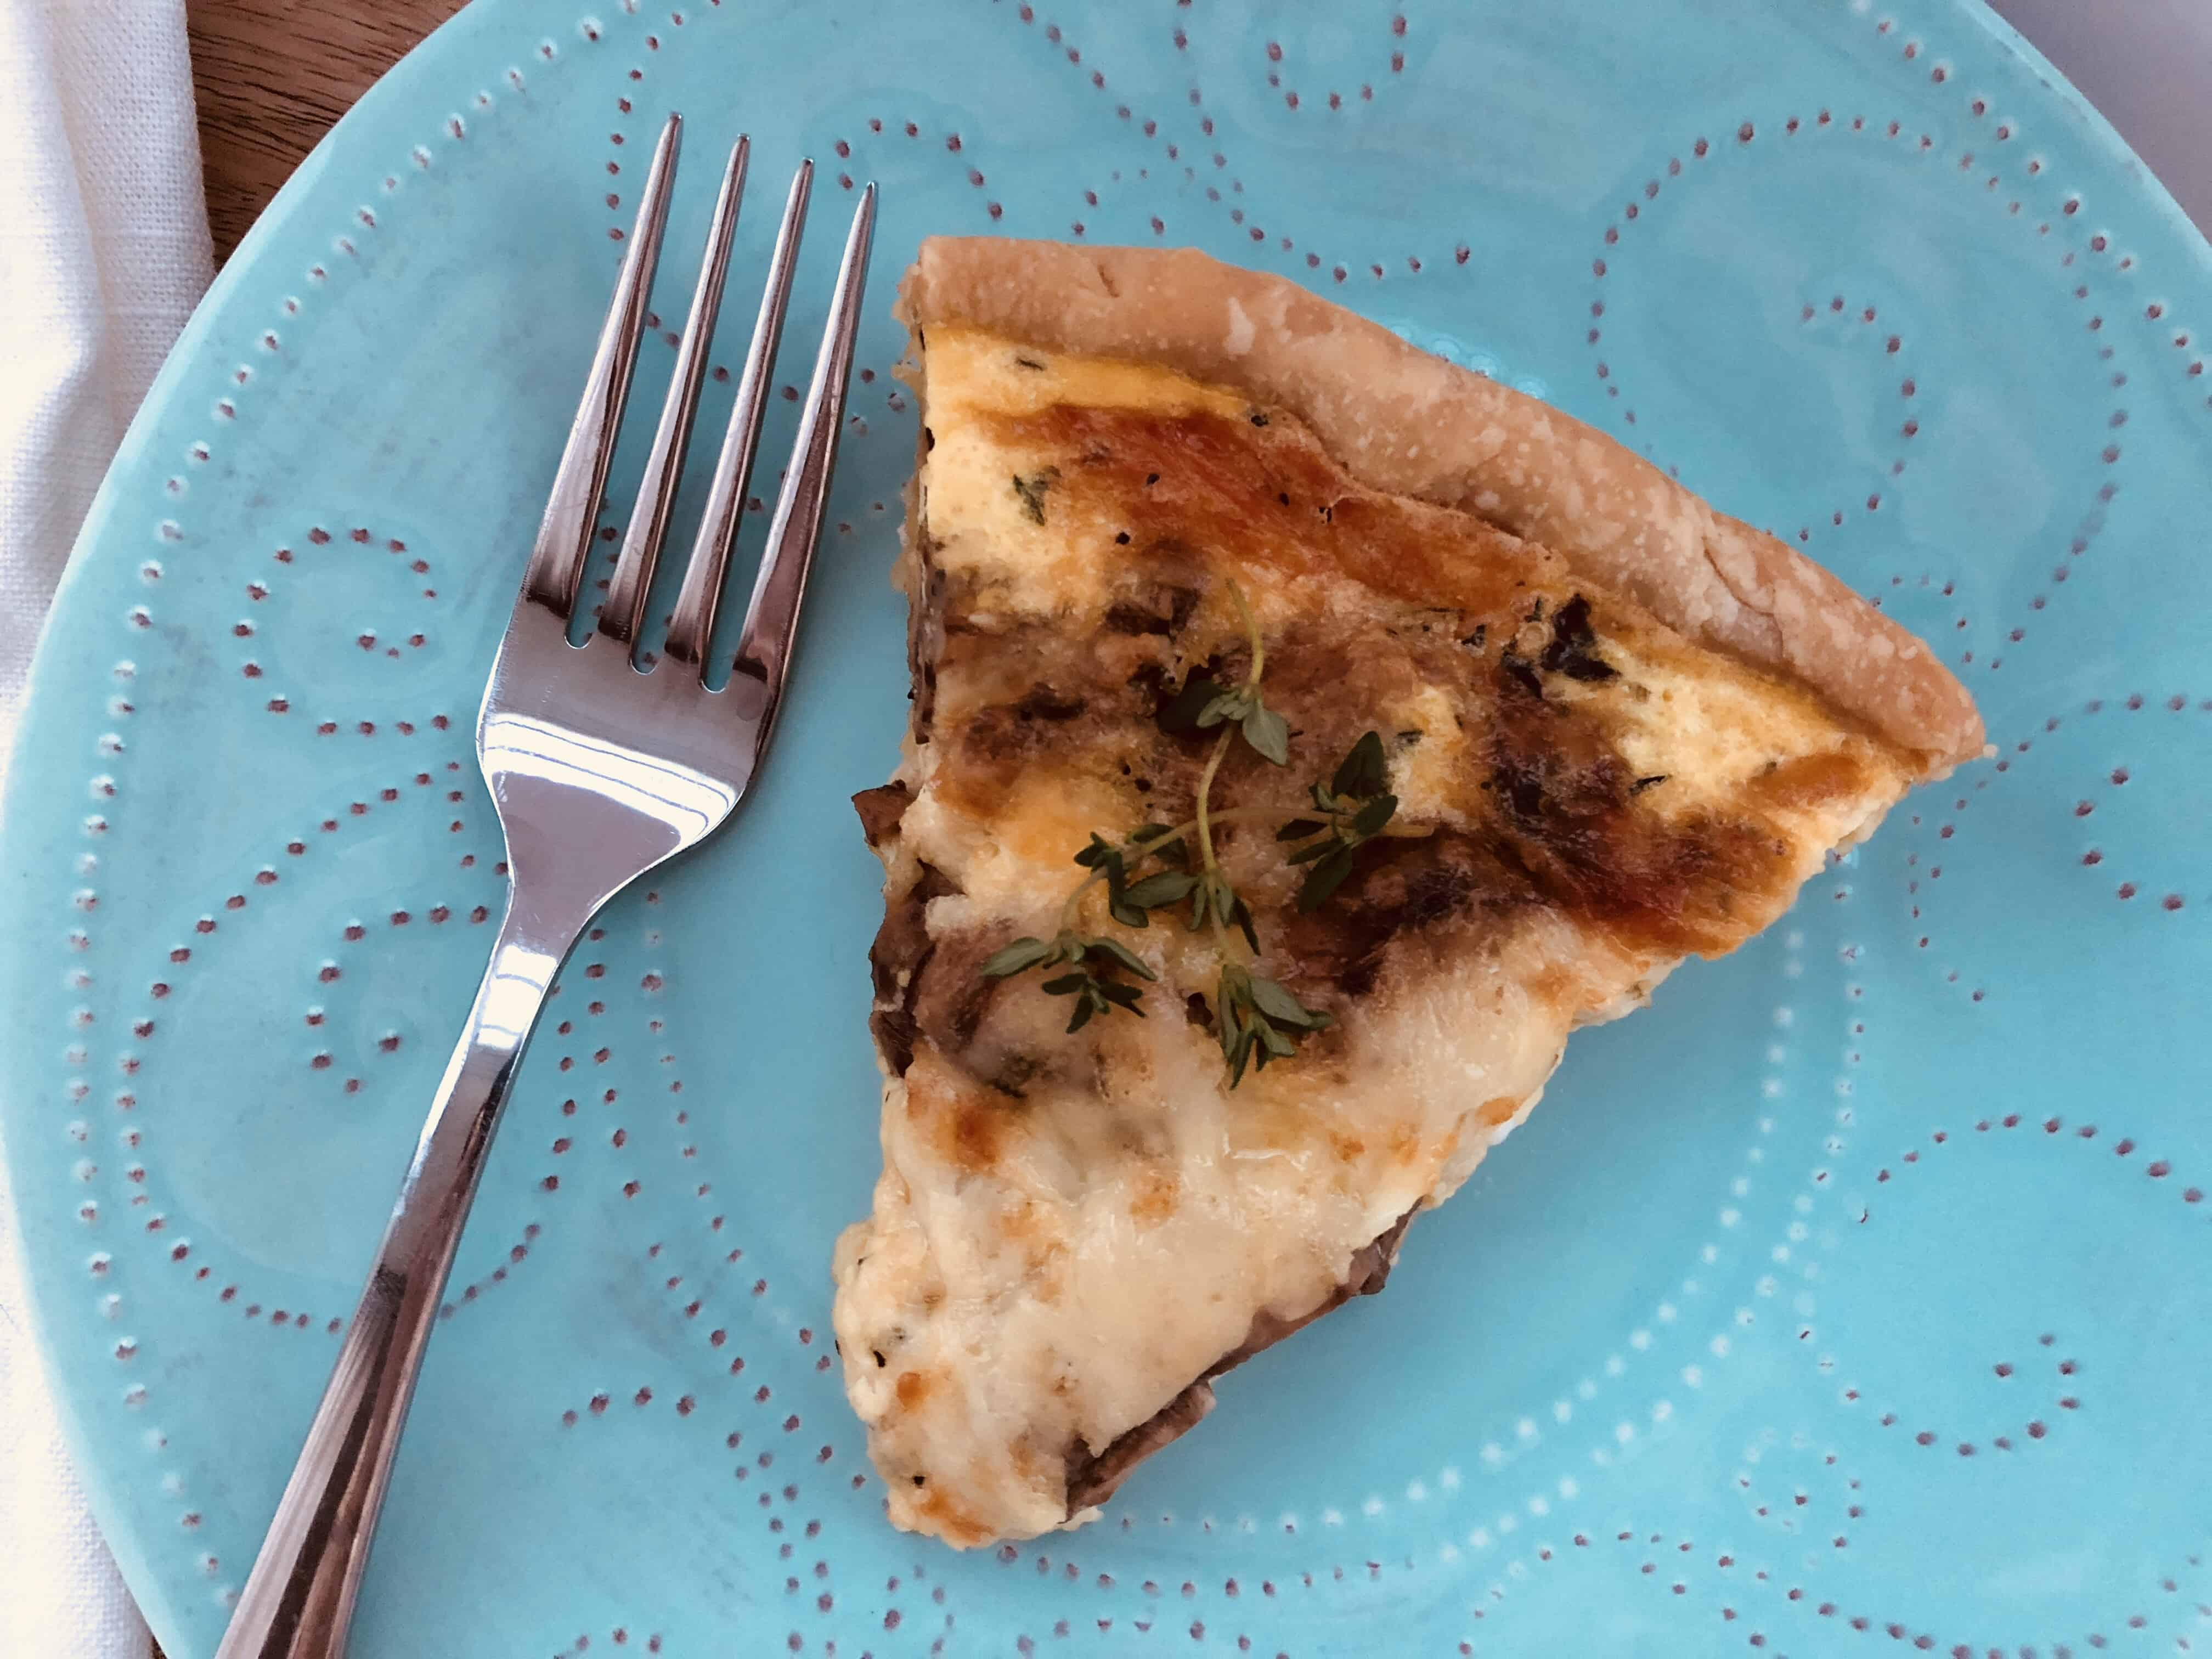 slice of Mushroom and Gruyere Quiche on a plate